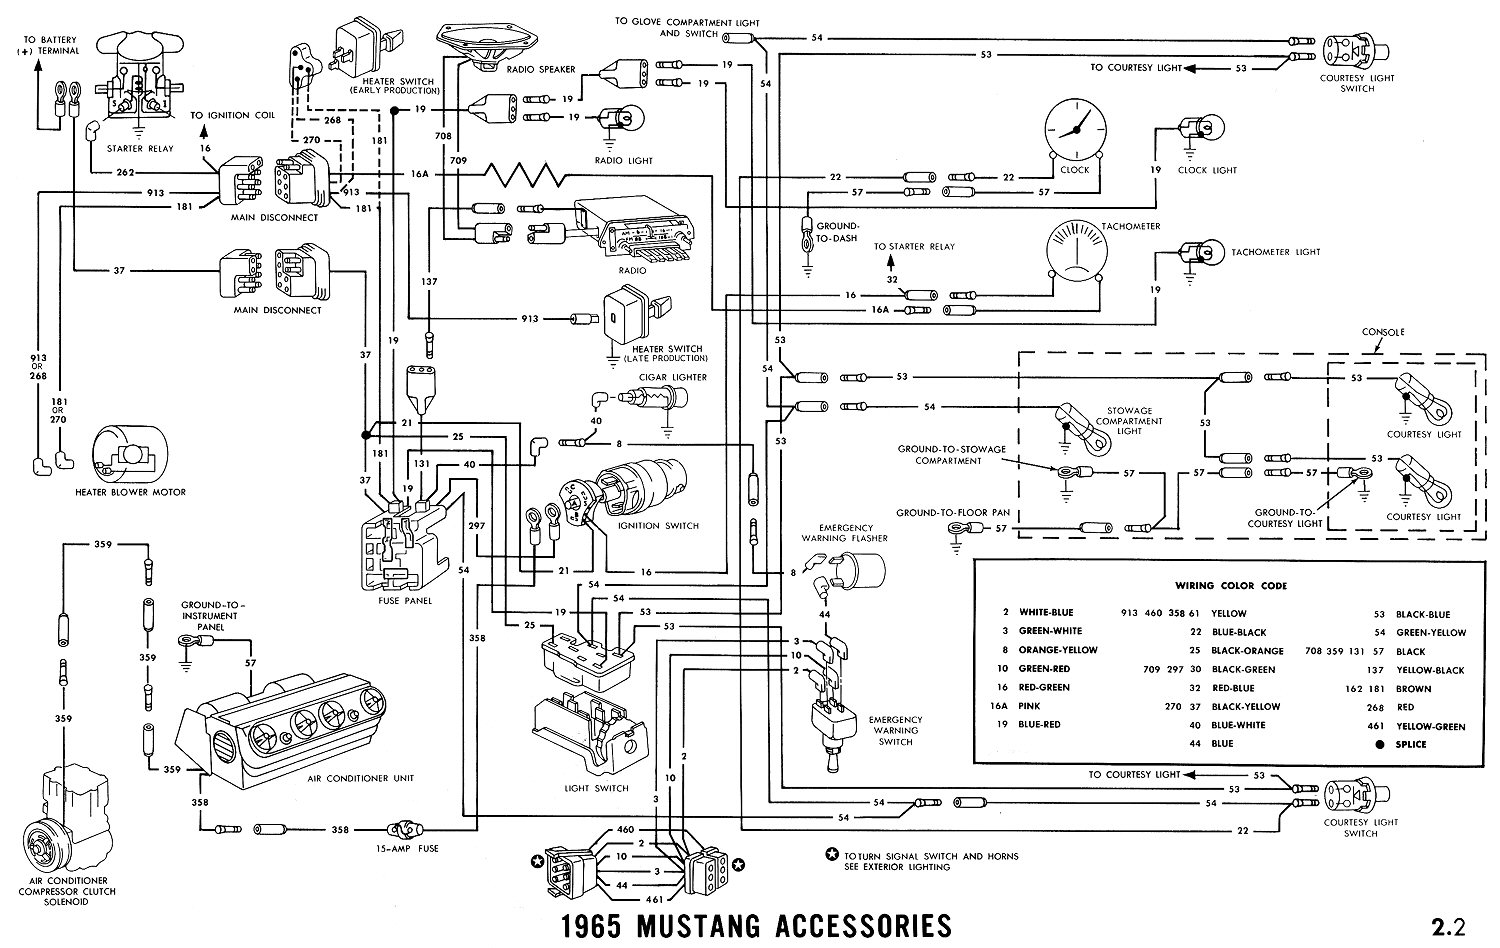 1965 mustang color wiring diagram